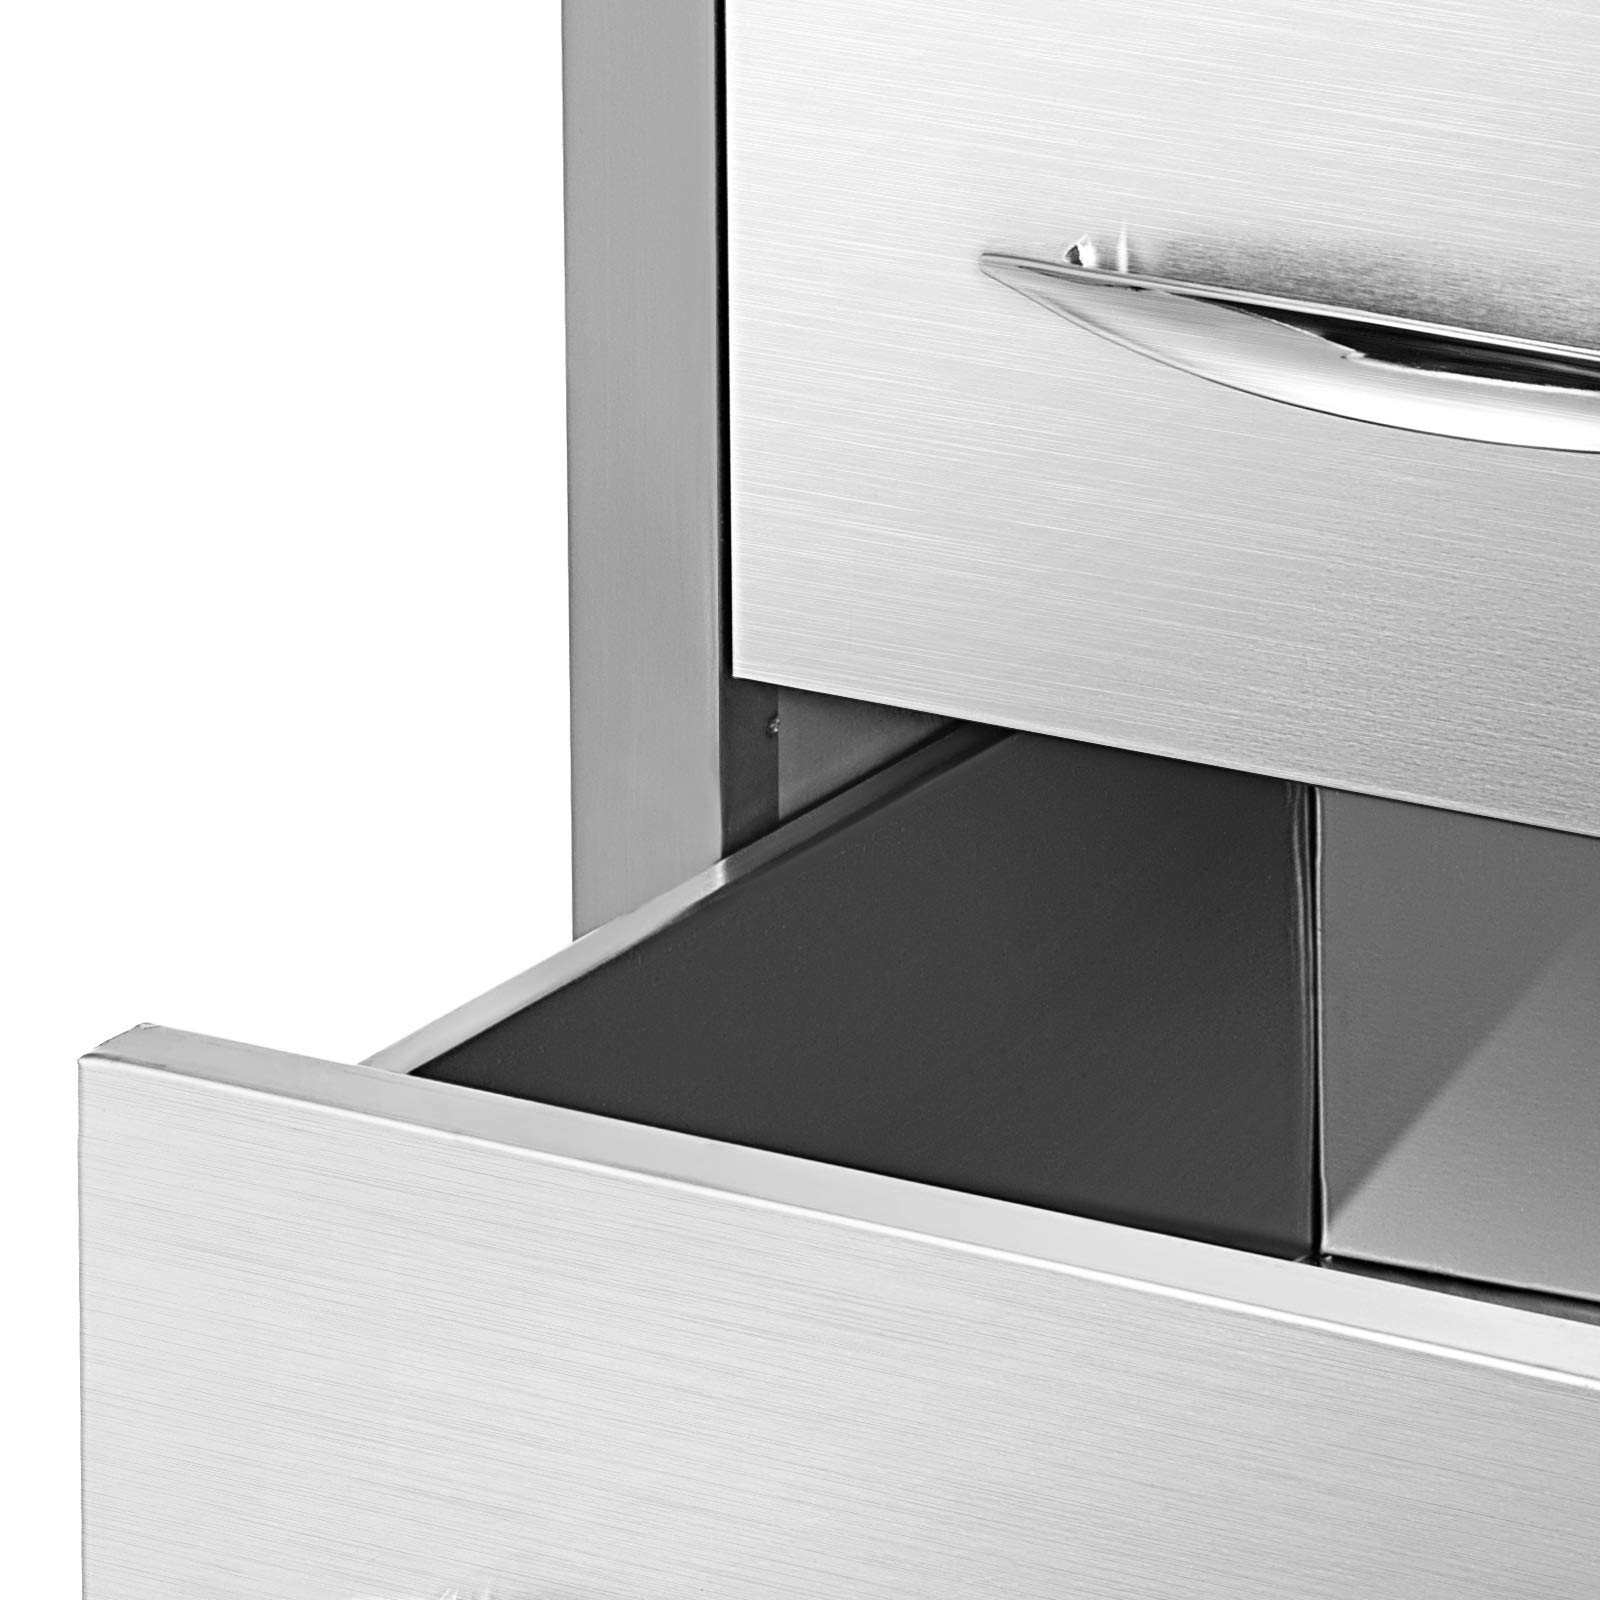 Mophorn 15''x21'' Outdoor Kitchen Drawer Stainless Steel Triple Access Drawer BBQ Storage with Chrome Handle Flush Mount Sliver by Mophorn (Image #8)